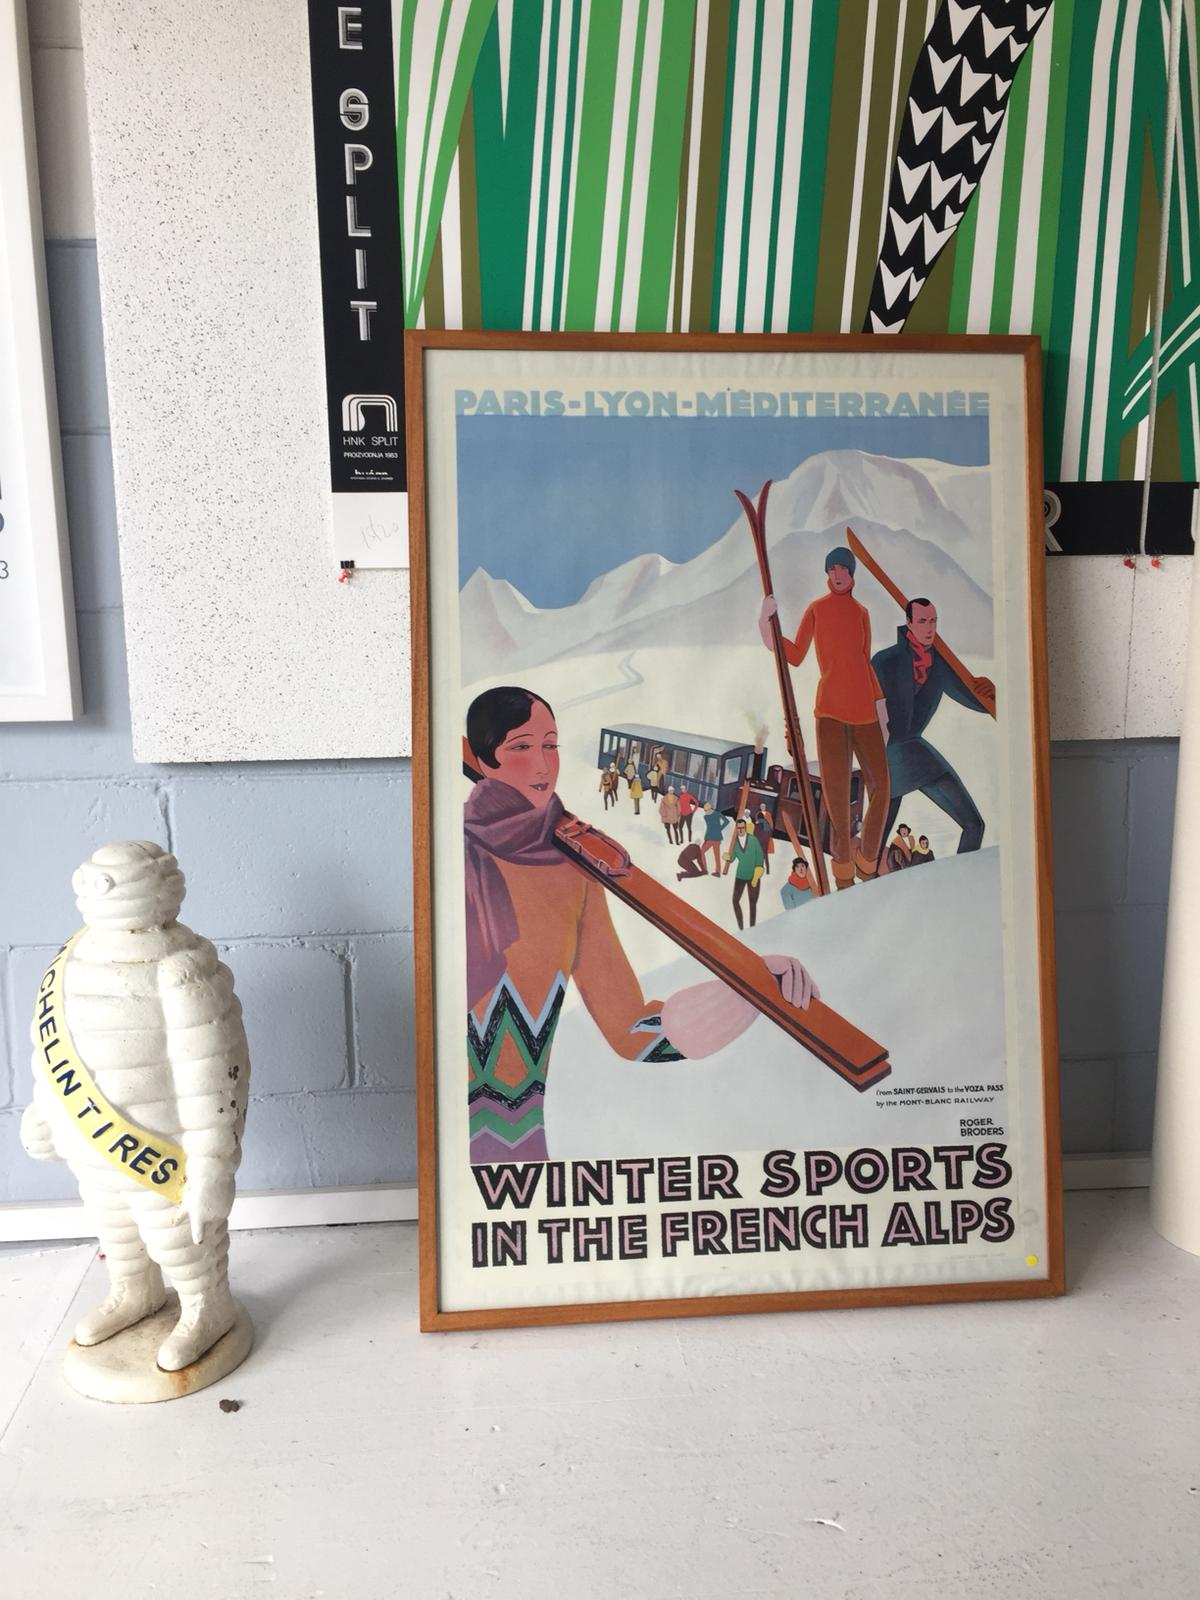 Winter sports in the French Alpes by Roger Broders